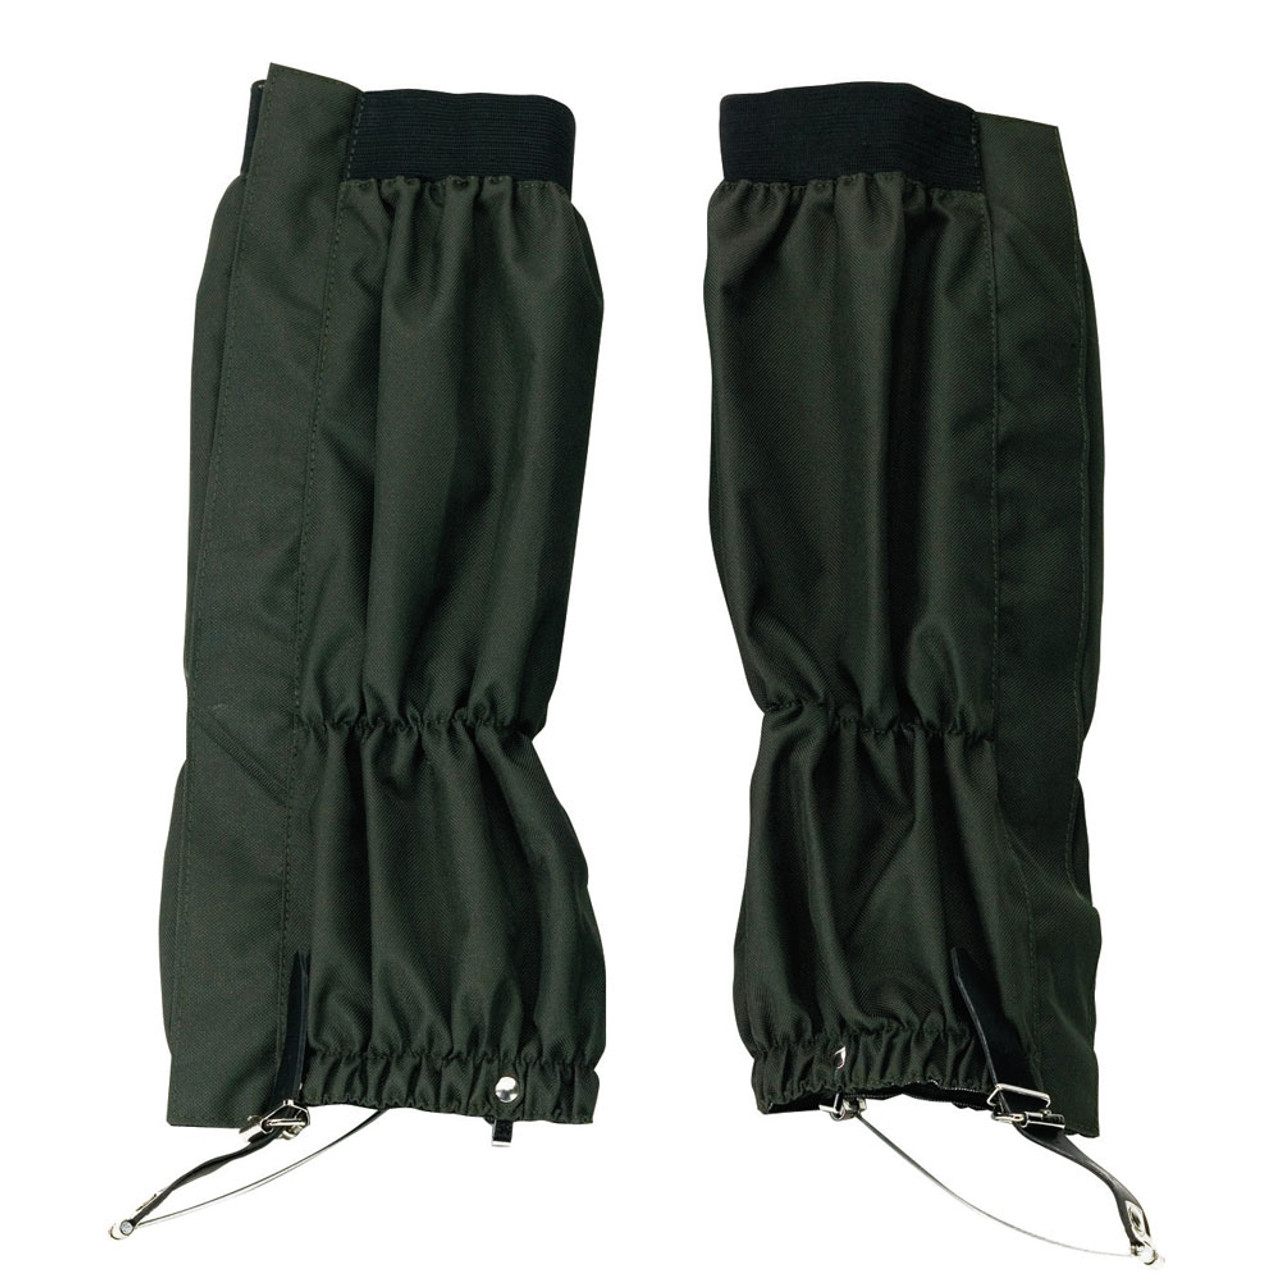 HUNTING PERCUSSION WATERPROOF BREATHABLE STRONG CHAPS IDEAL FOR BEATING